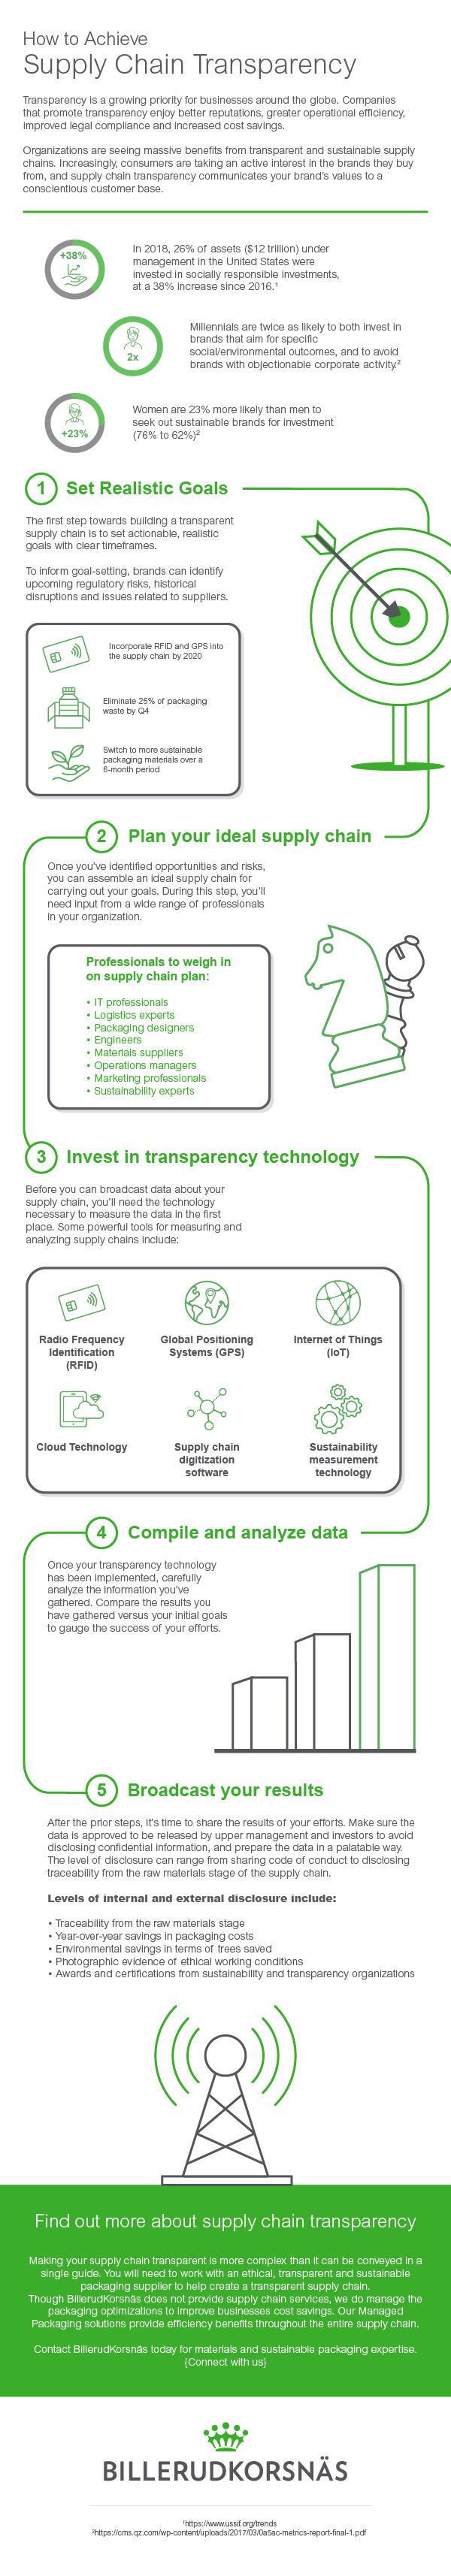 How to achieve supply chain transparency_v3.1.jpg